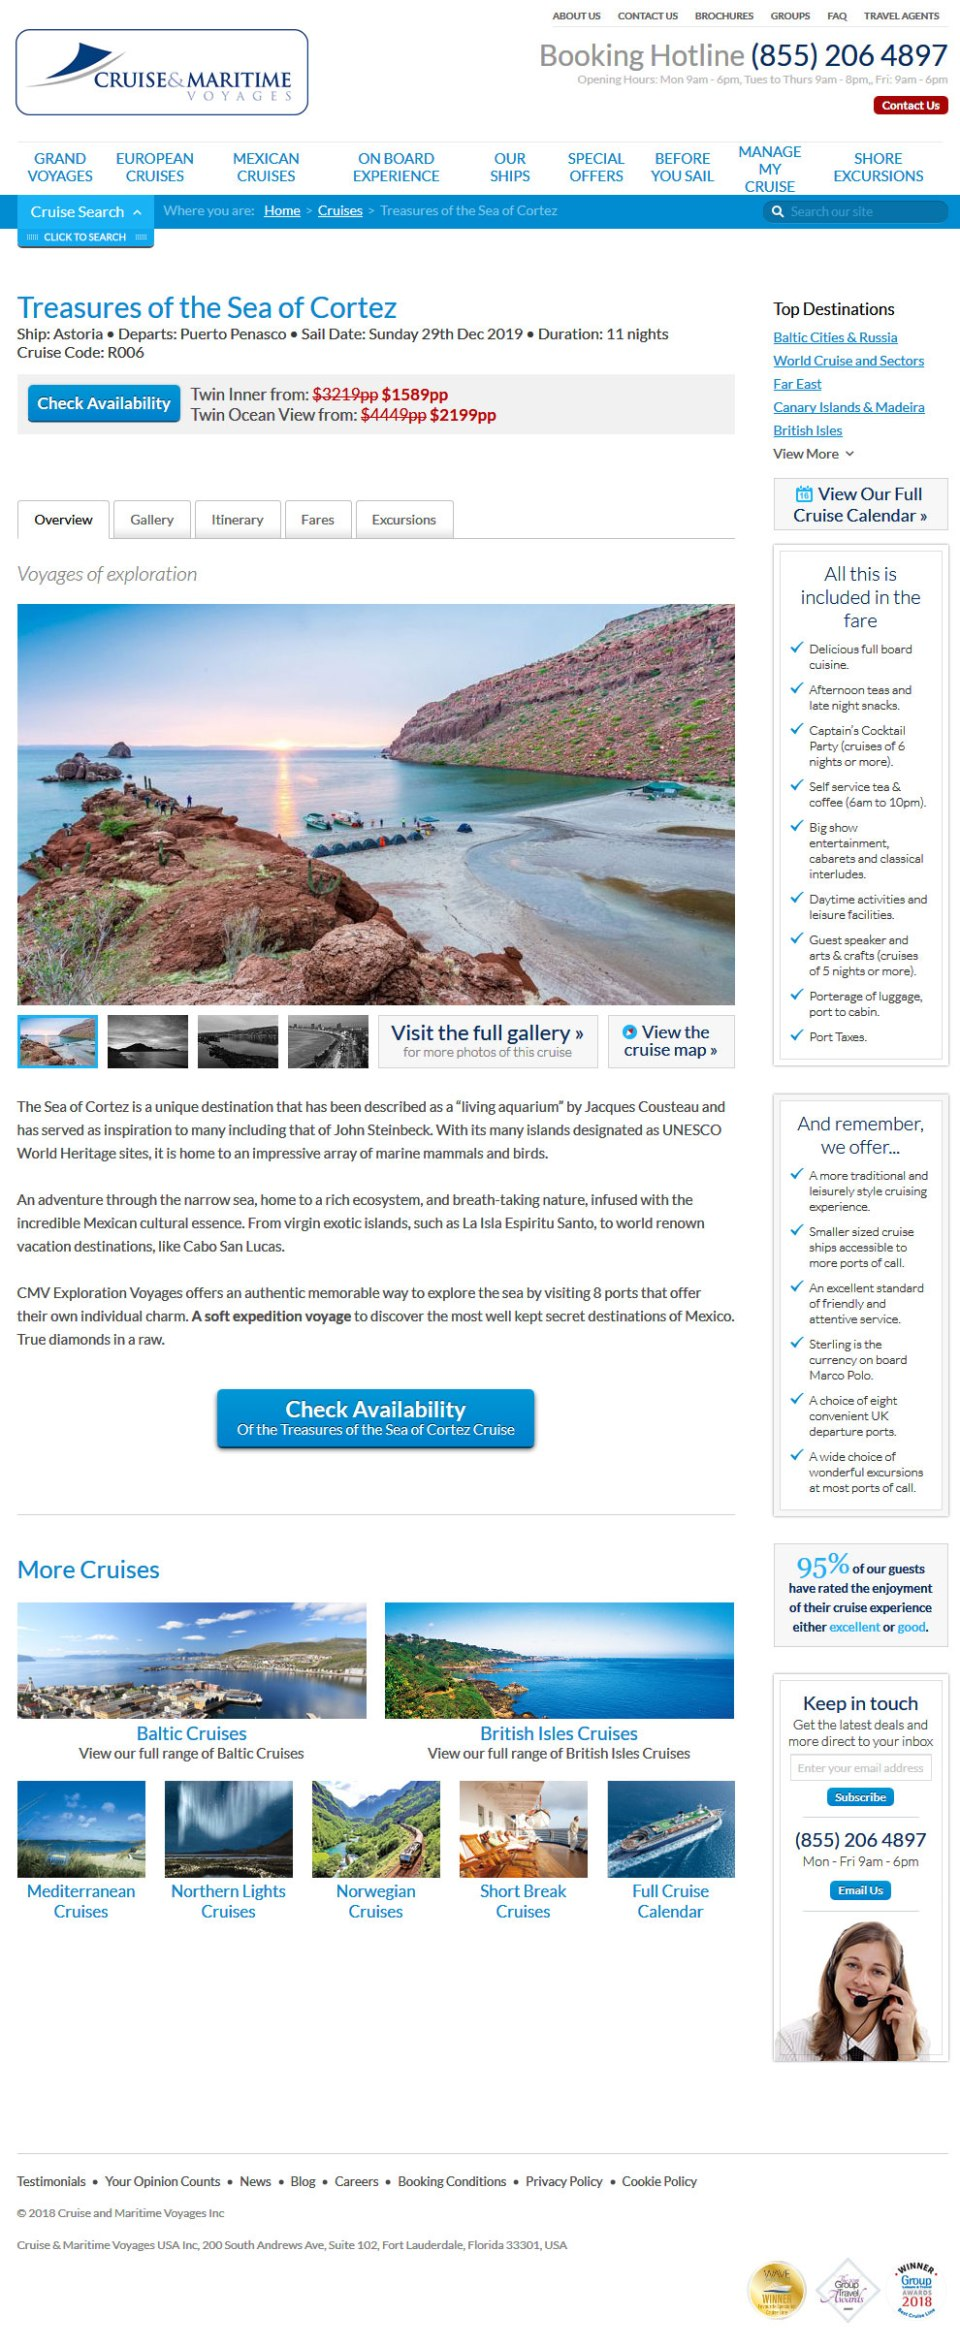 Cruise & Maritime Voyages in Rocky Point Mexico (Puerto Penasco) December 29, 2019. Click the Picture to visit Cruise & Maritime Voyages Site.